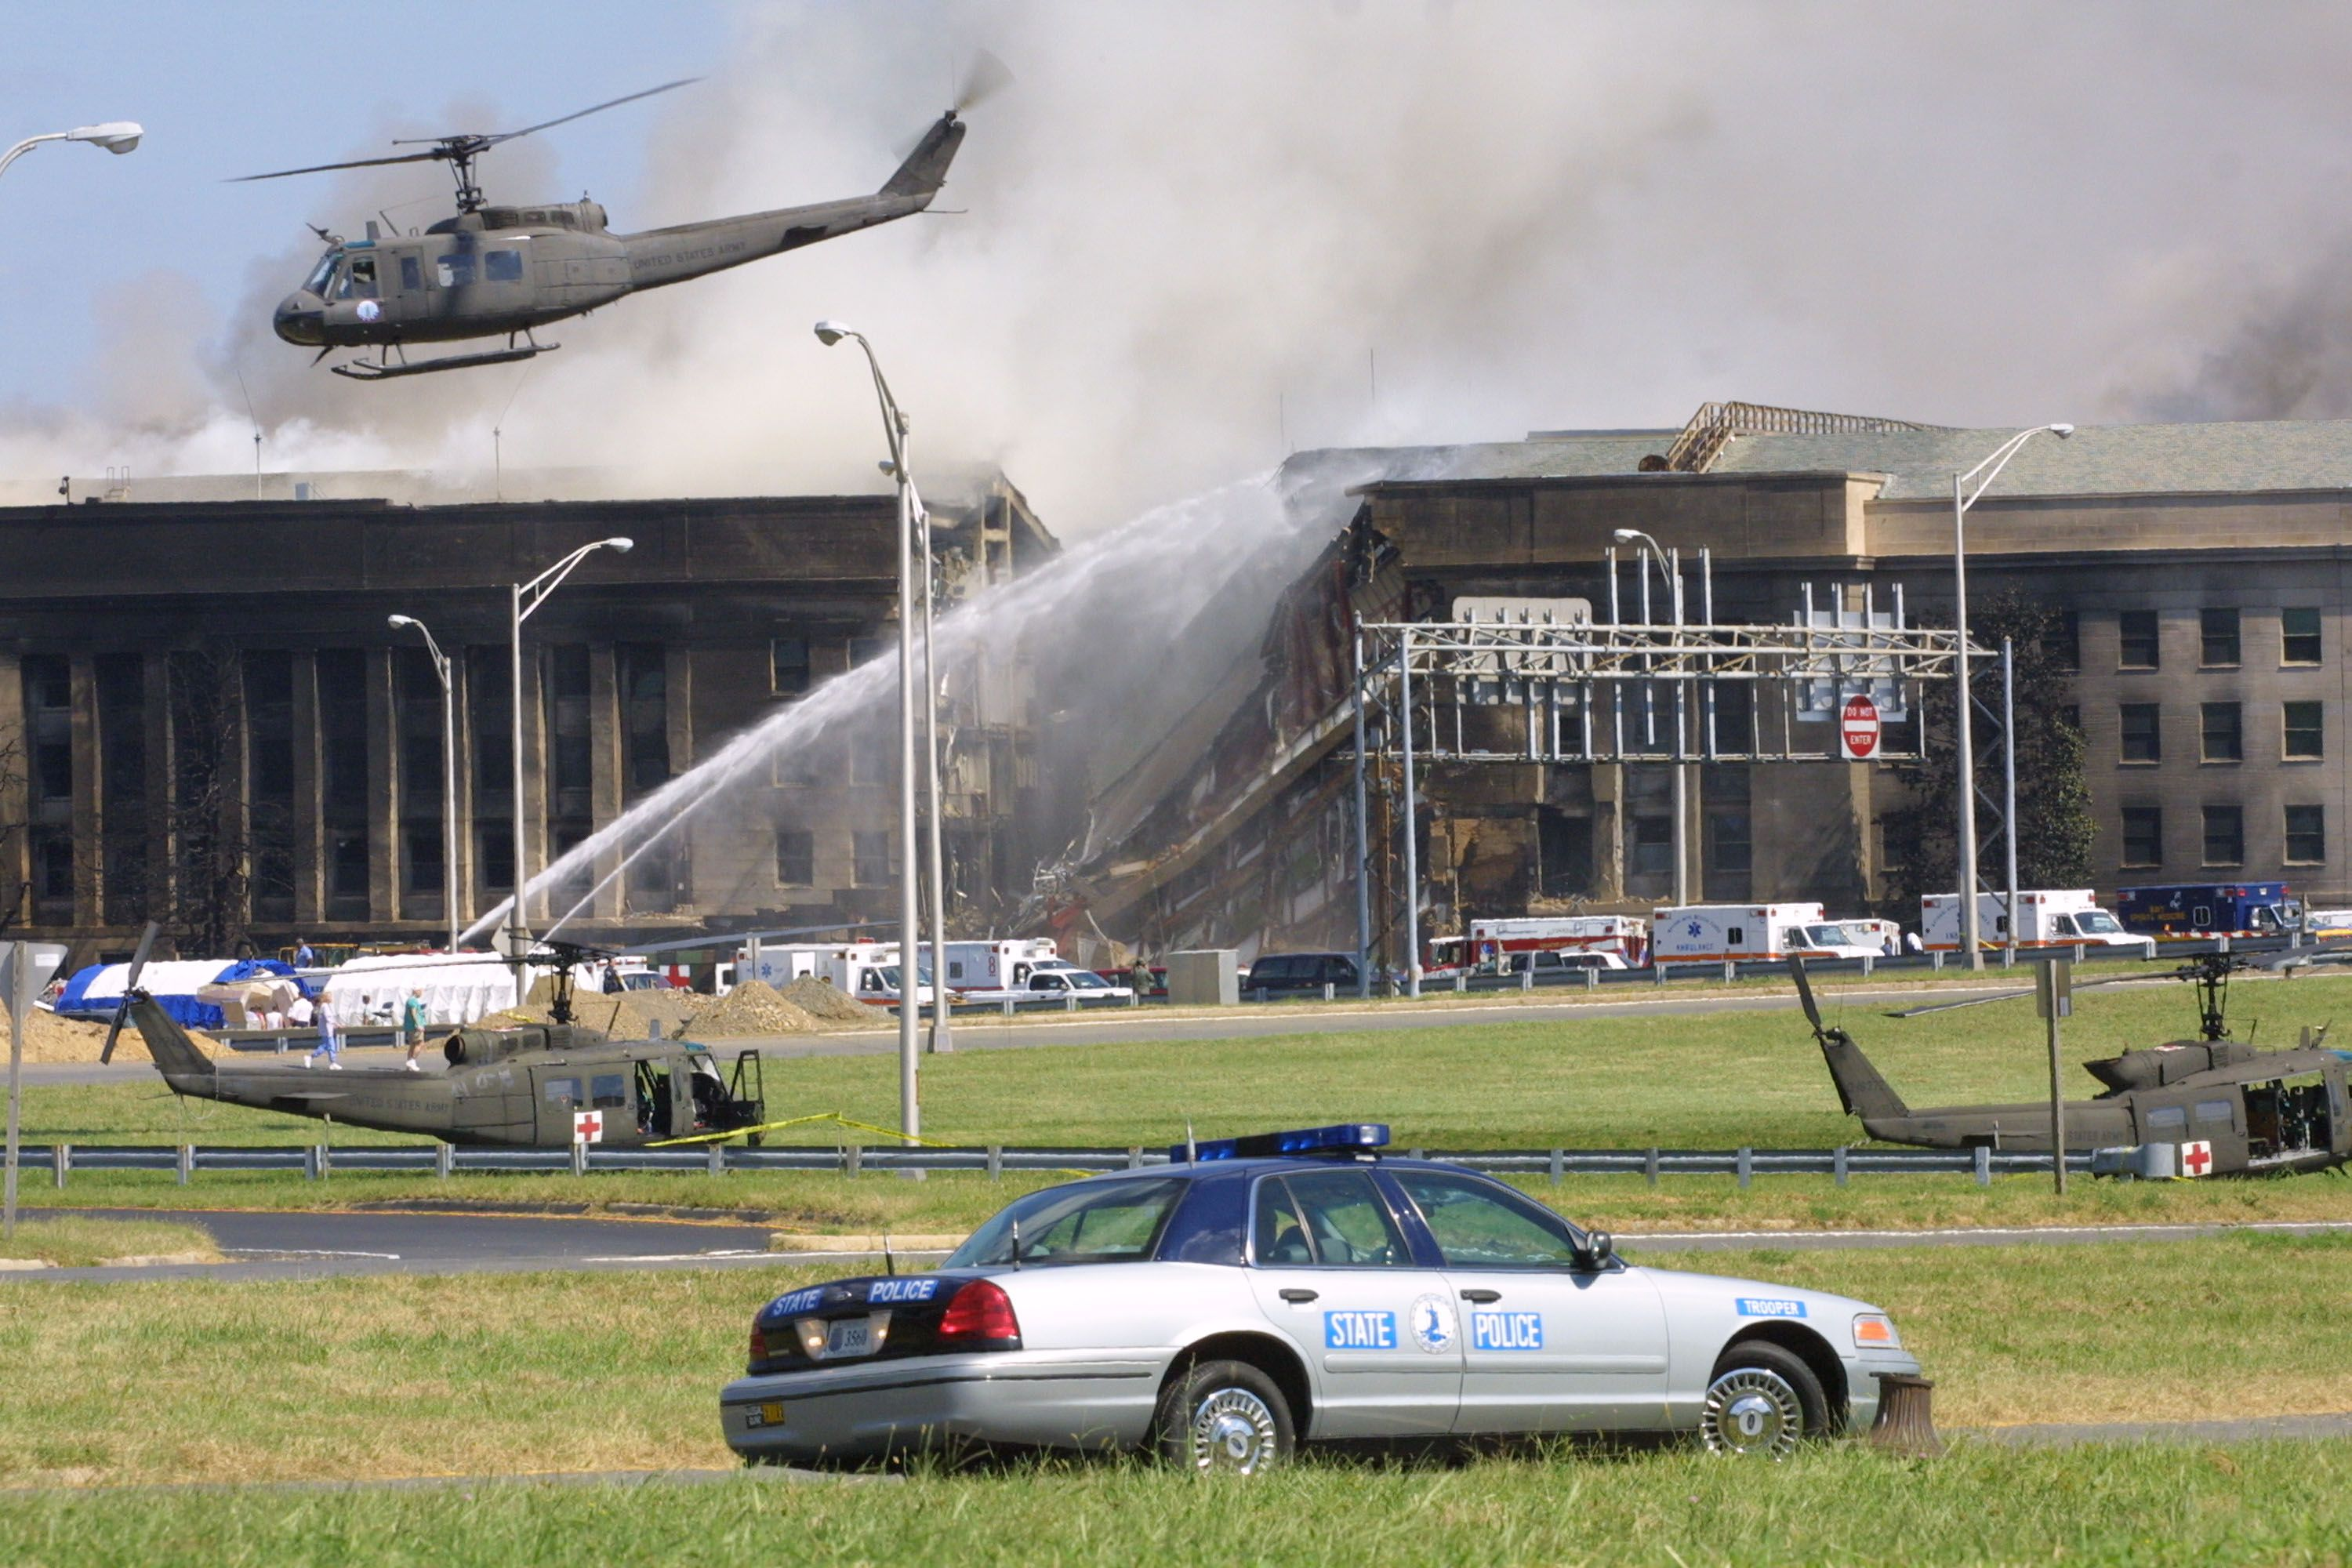 Debunking the Myths About the 9/11 Attack on the Pentagon